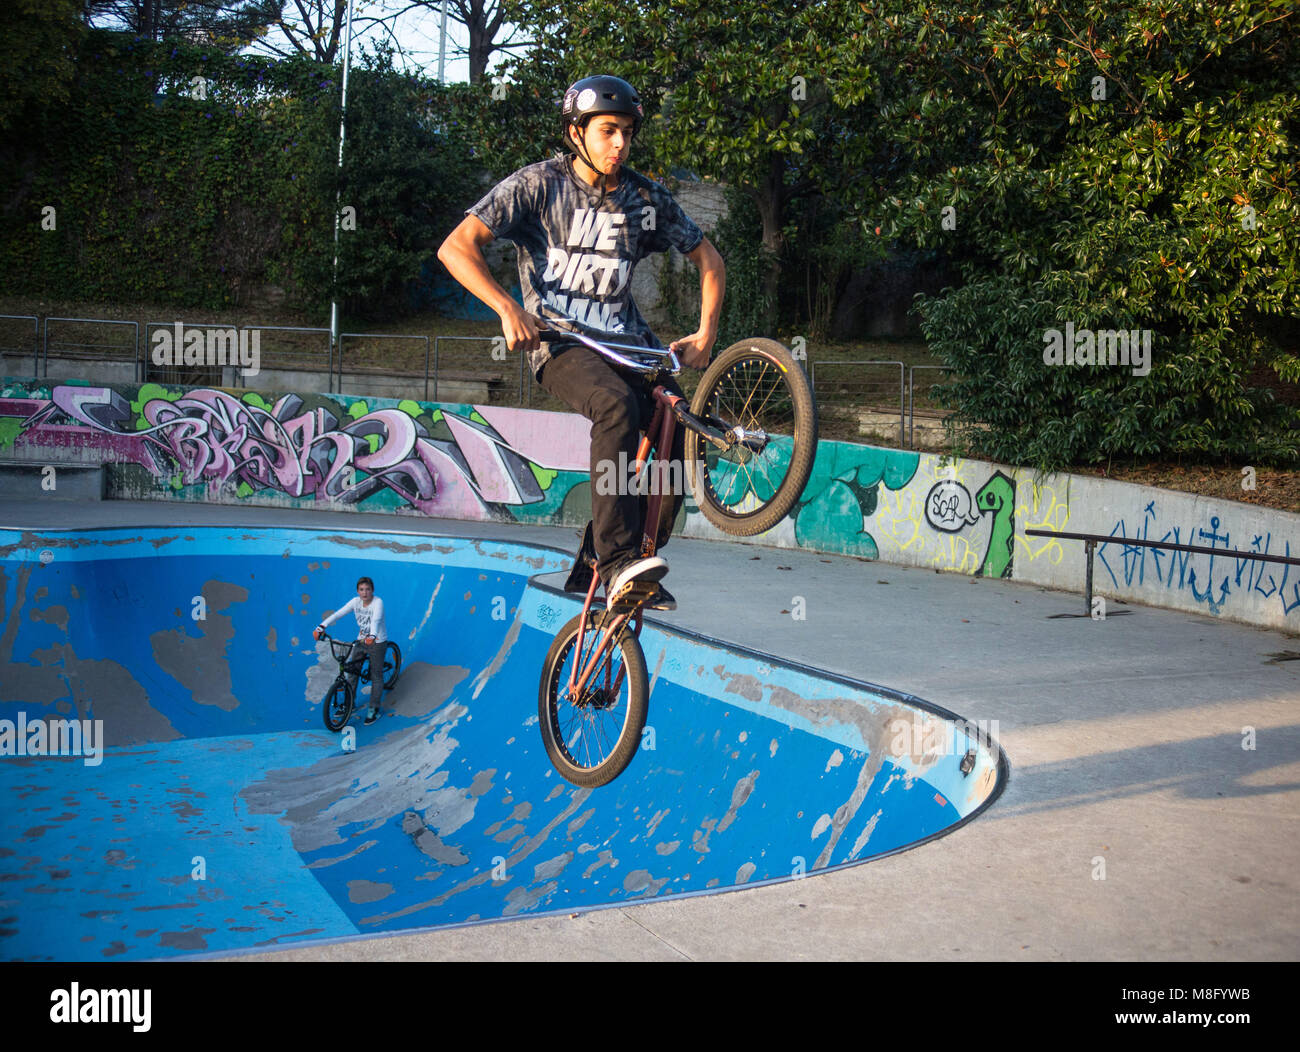 GENOA, ITALY NOVEMBER 16, 2015 - Boy jumping with BMX bike on a BMX session in the city. - Stock Image